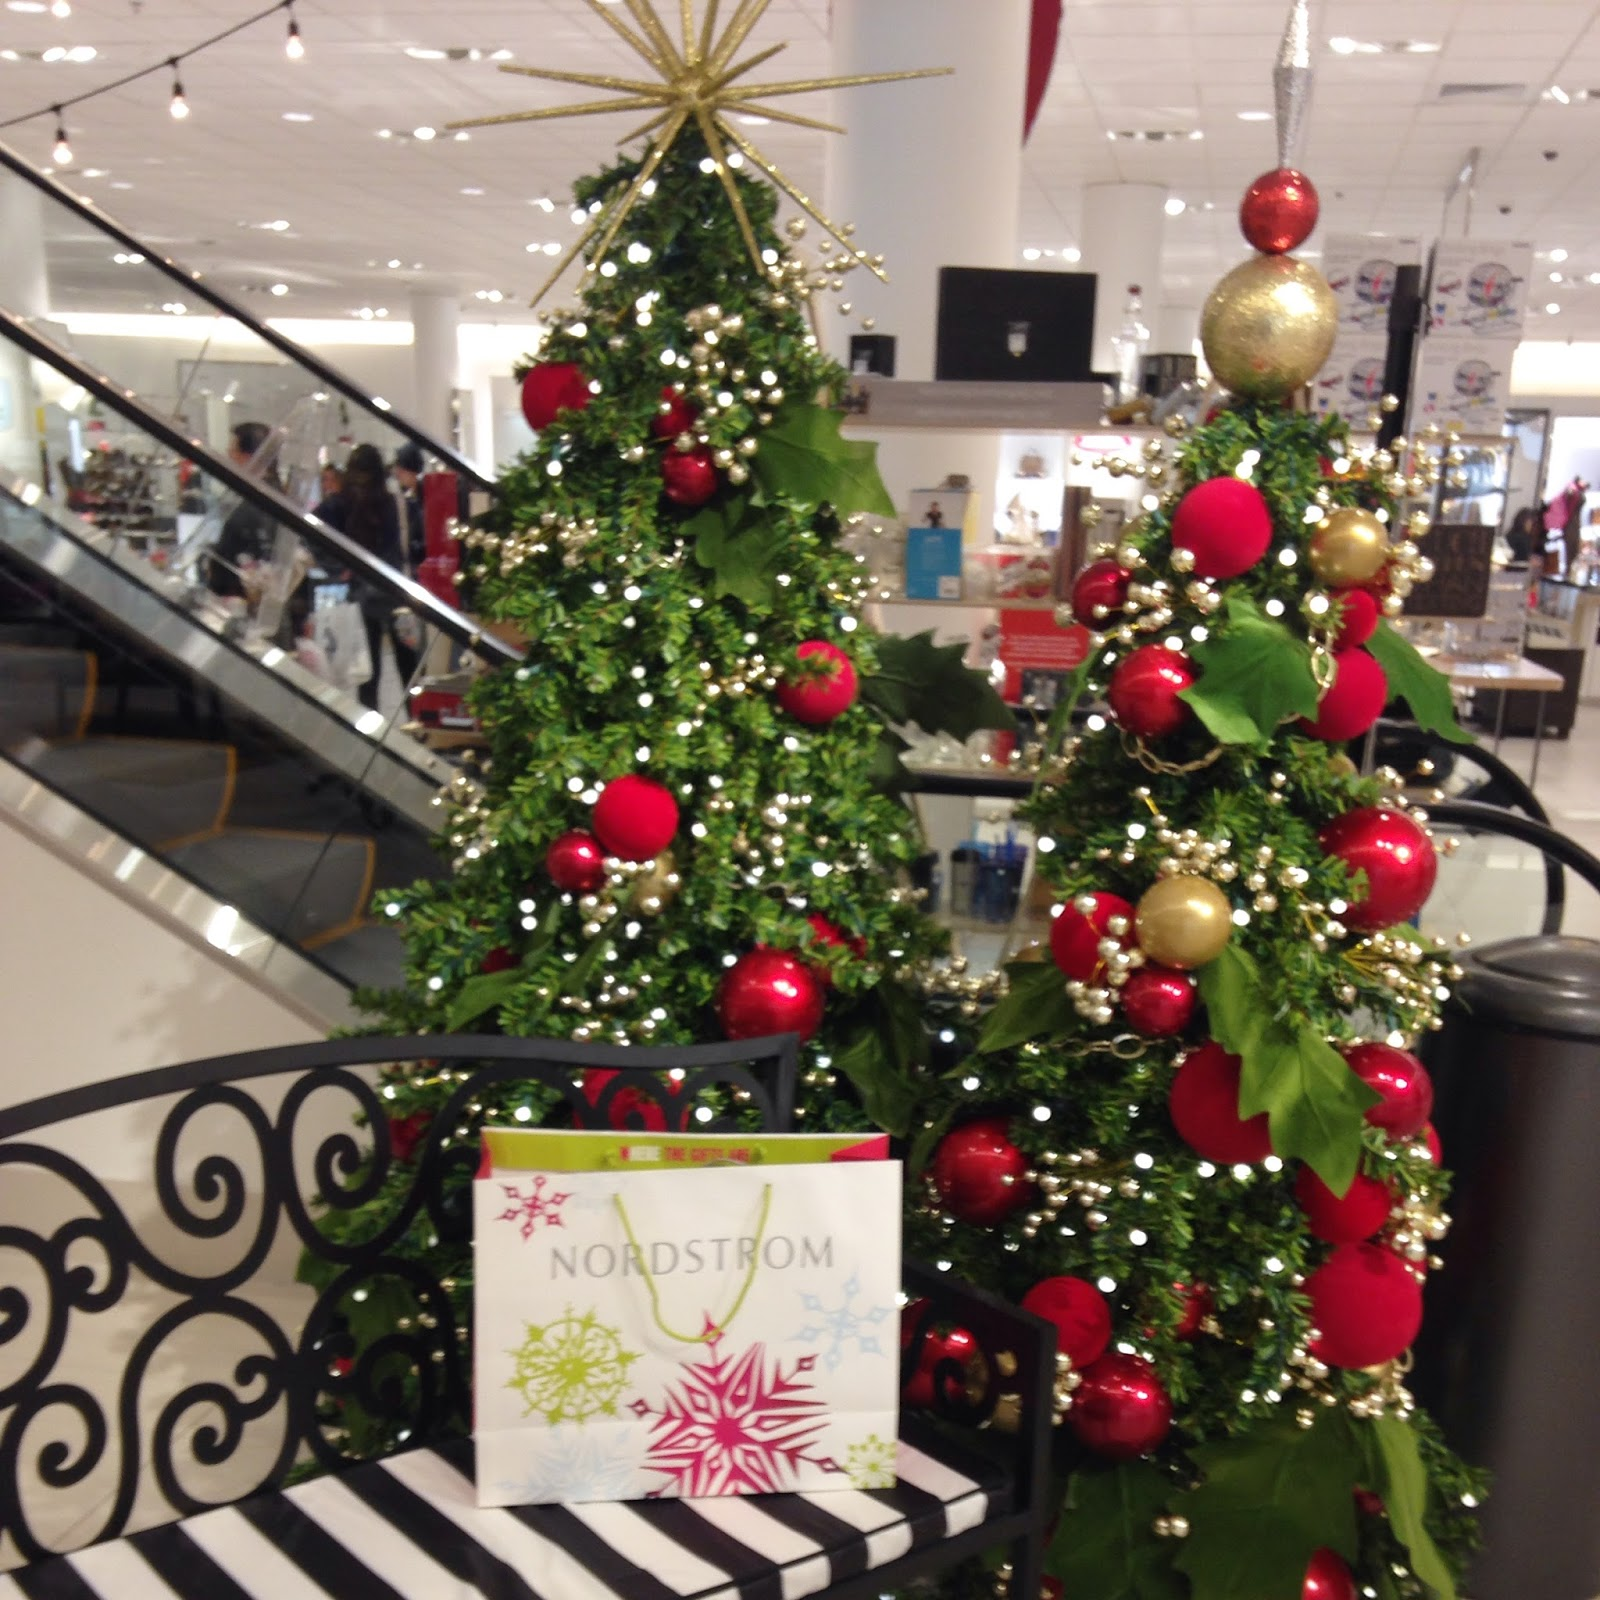 the beautiful christmas decorations dont go up at nordstrom until november 26th - Nordstrom Christmas Decorations